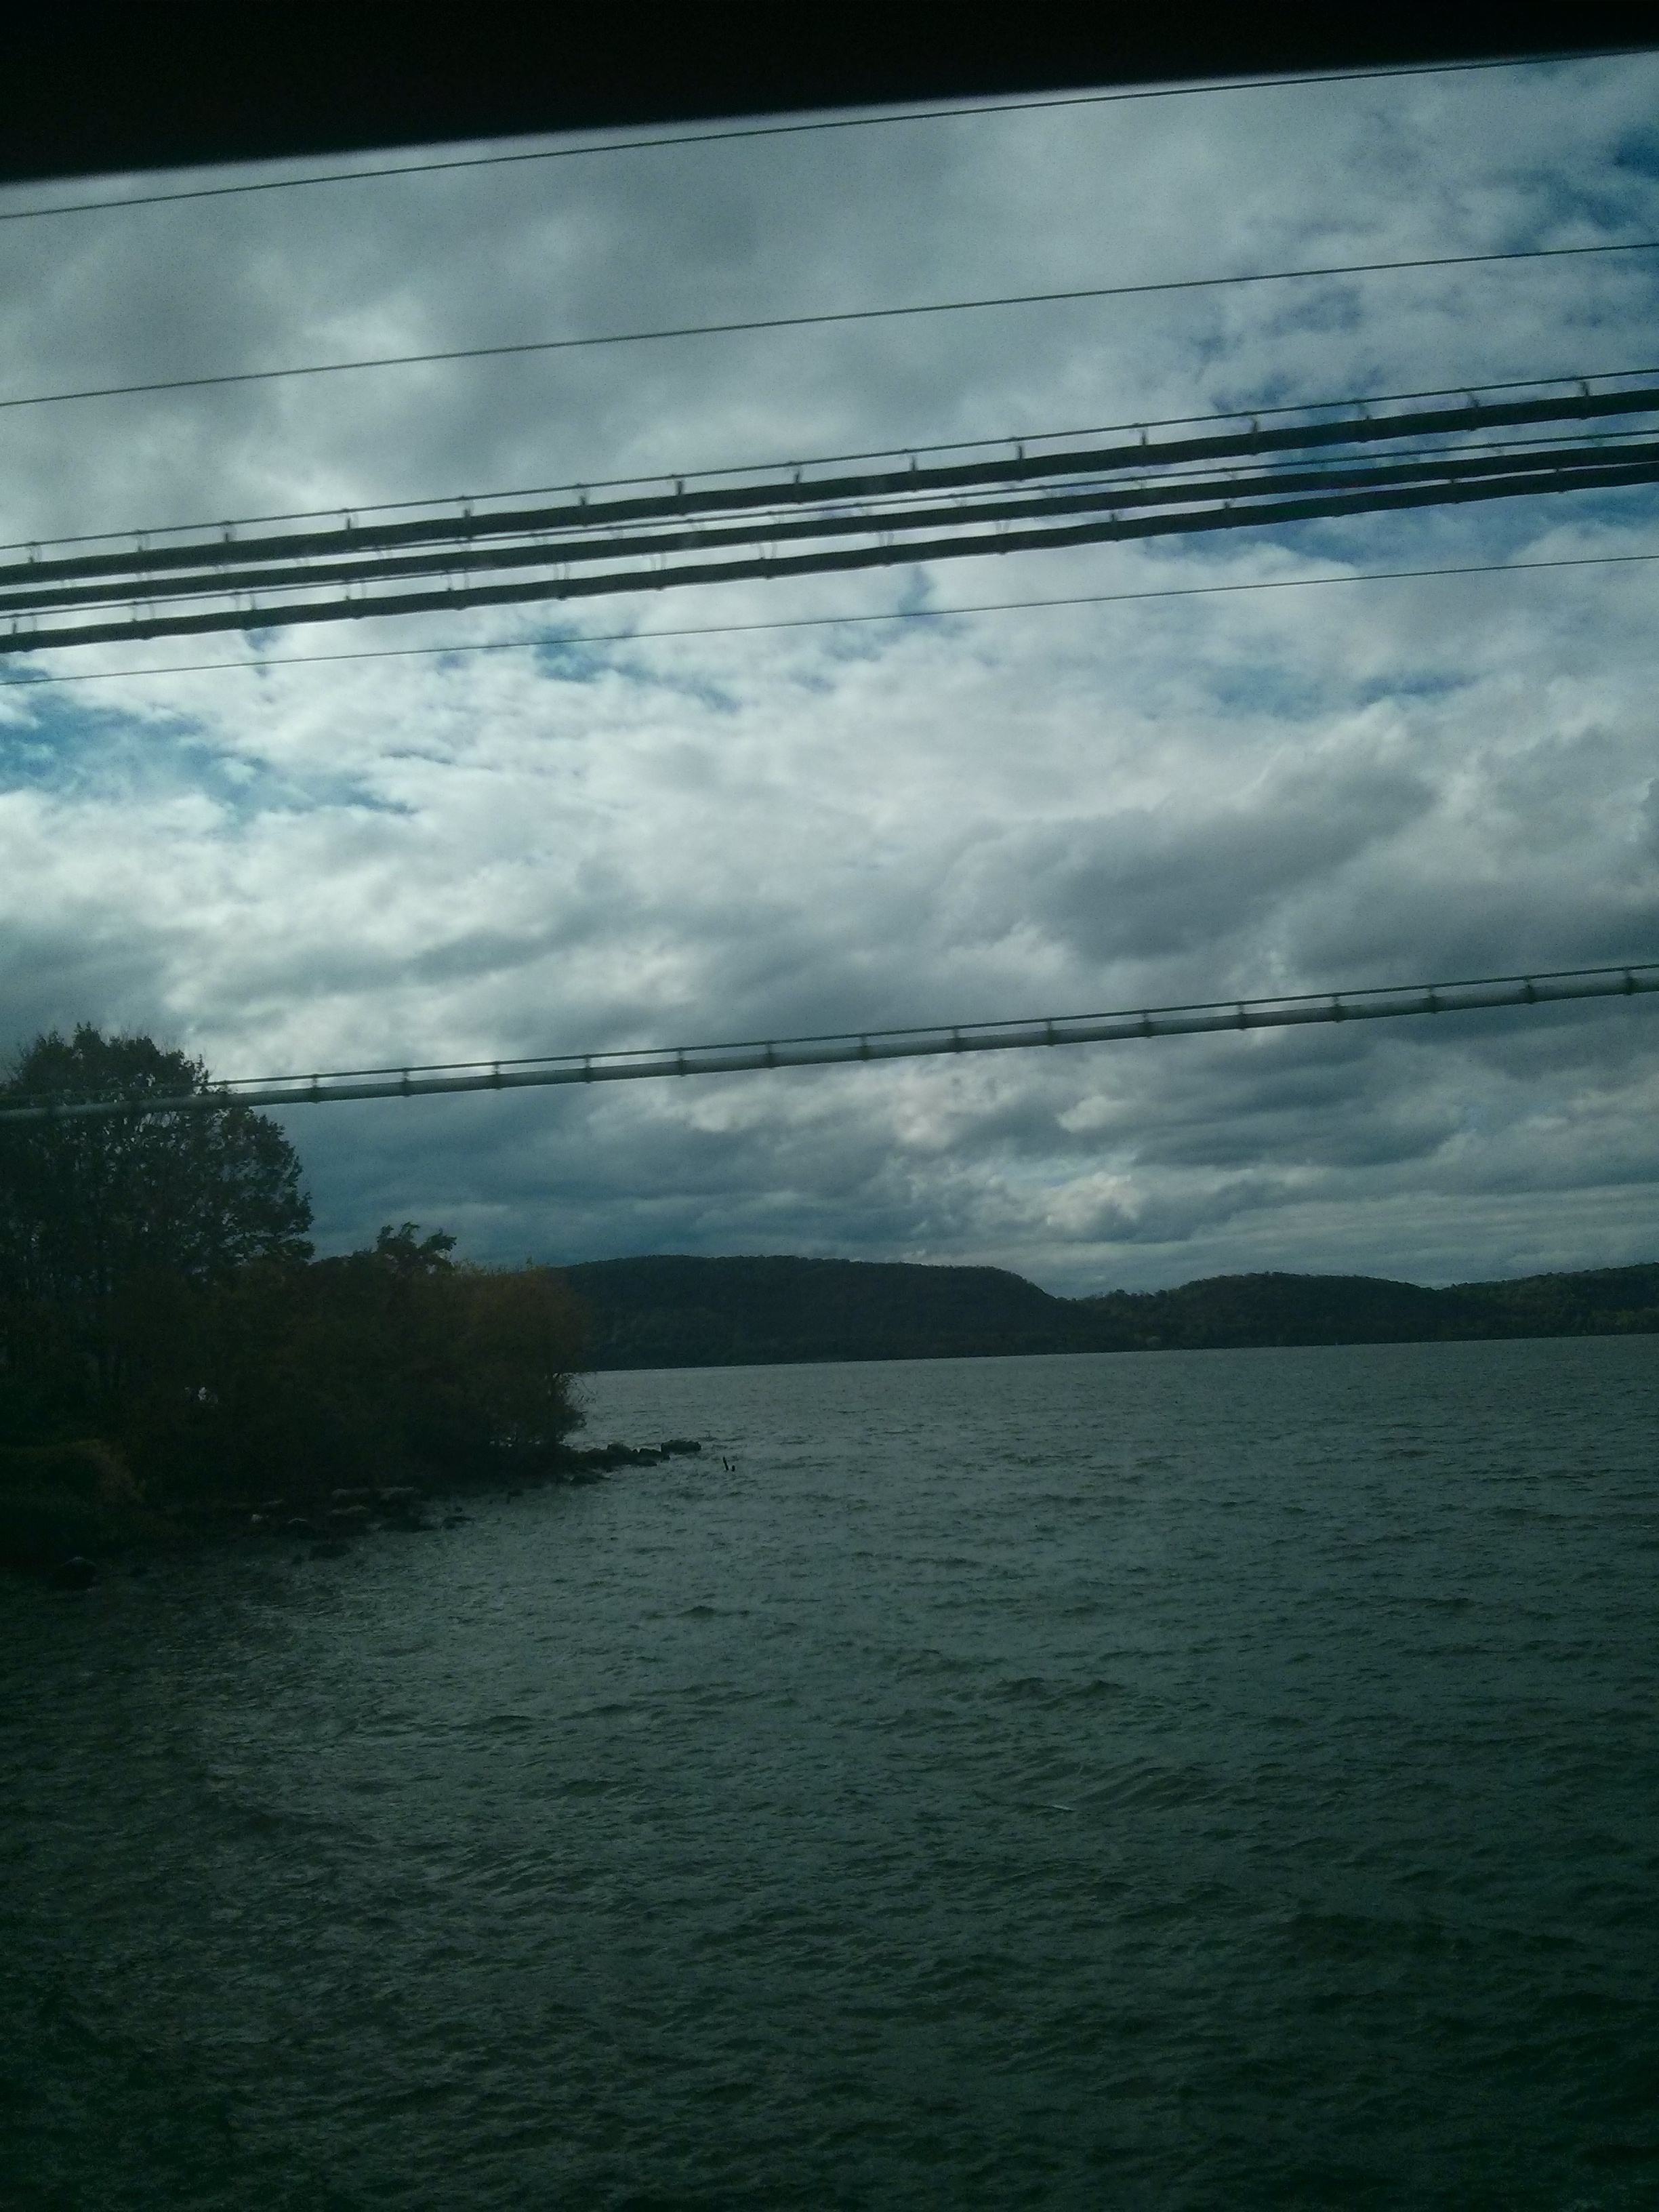 Hudson River seen from a train ride